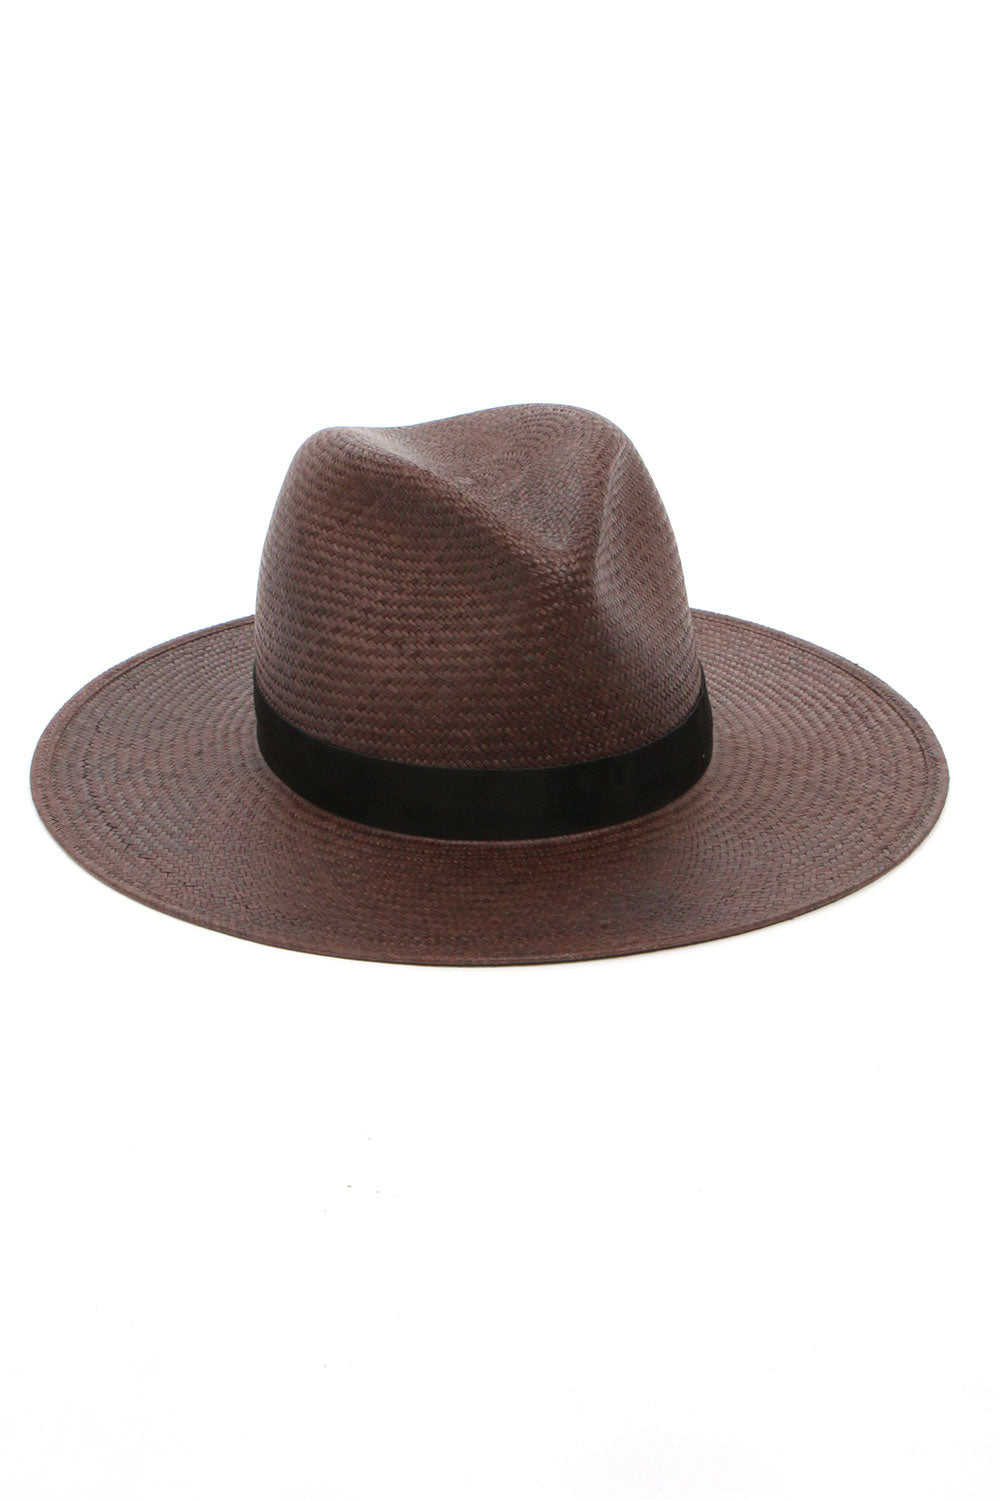 Karla Straw Hat in Chestnut Color by Janessa Leone